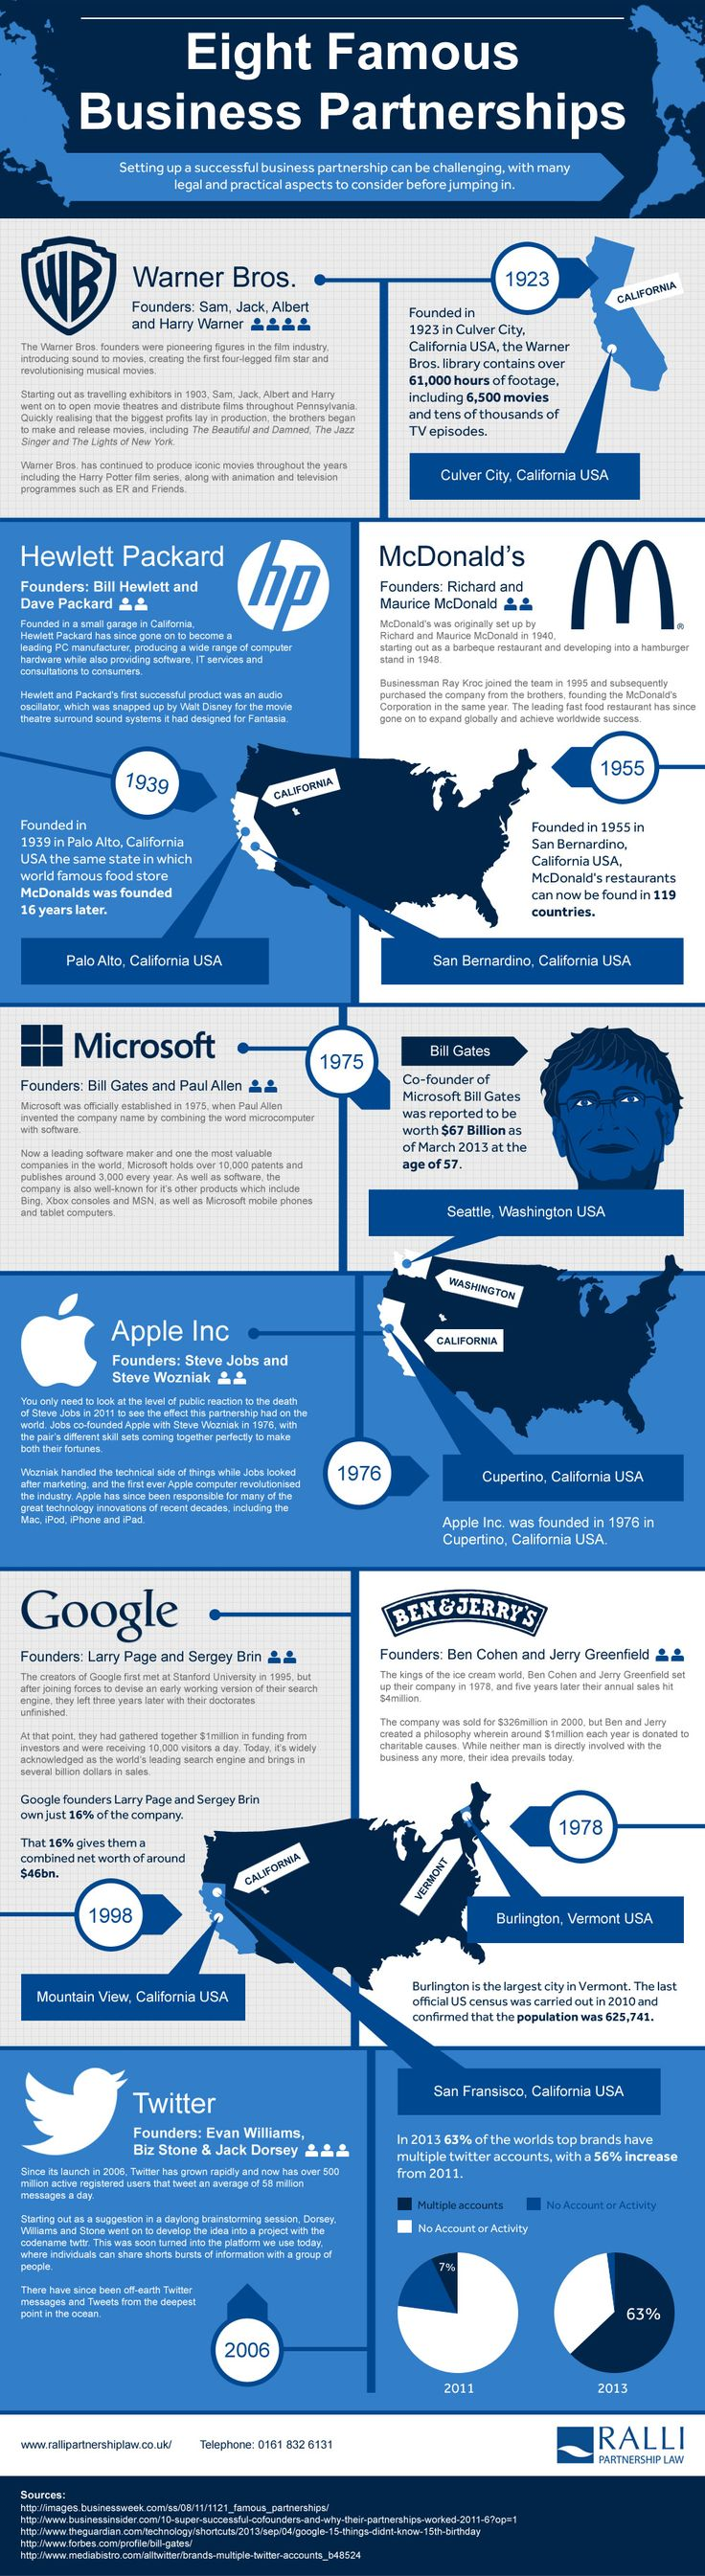 8 Famous Business Partnerships That Really Worked #Infographic #Business